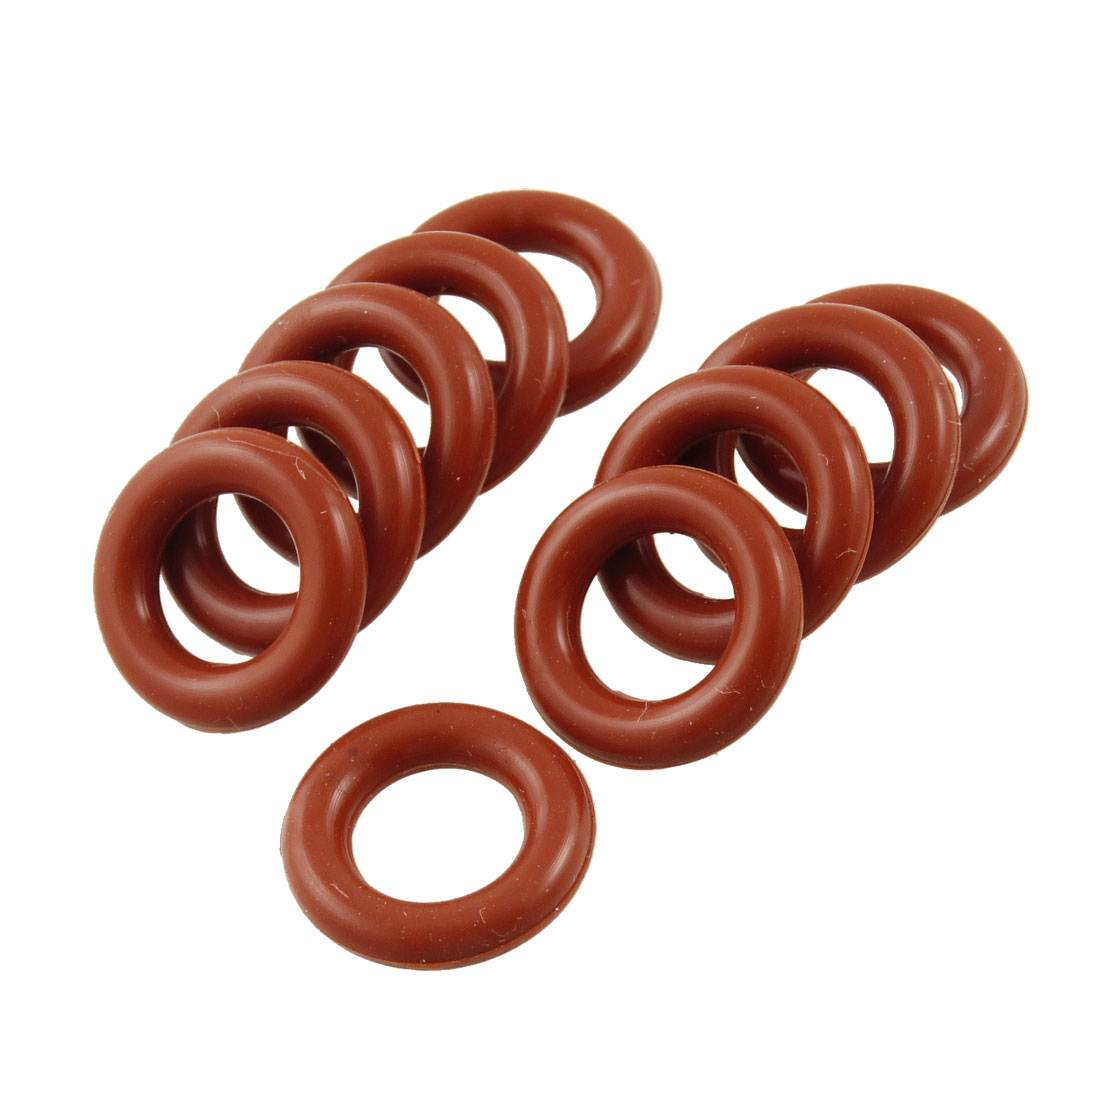 10 Pcs Industrial Silicone O Ring Seal Sealing Gaskets 9mm x 16mm x 3.5mm